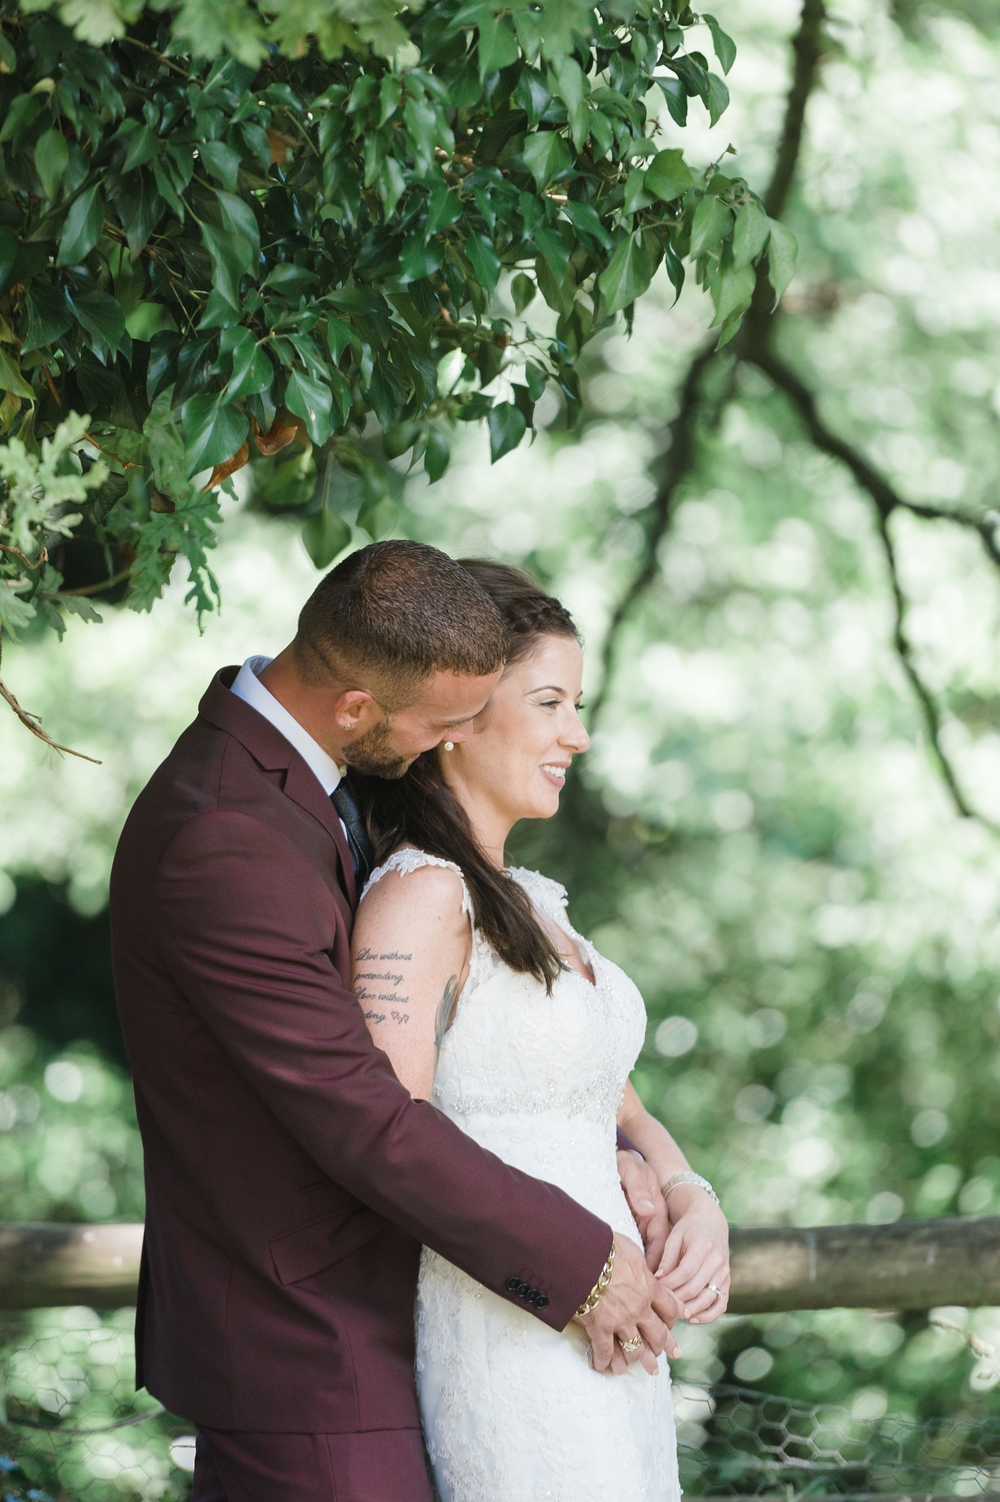 hannah-mcclune-photography-mill-house-hotel-swallowfield-rustic-wedding-burgundy-and-peach-wedding-61